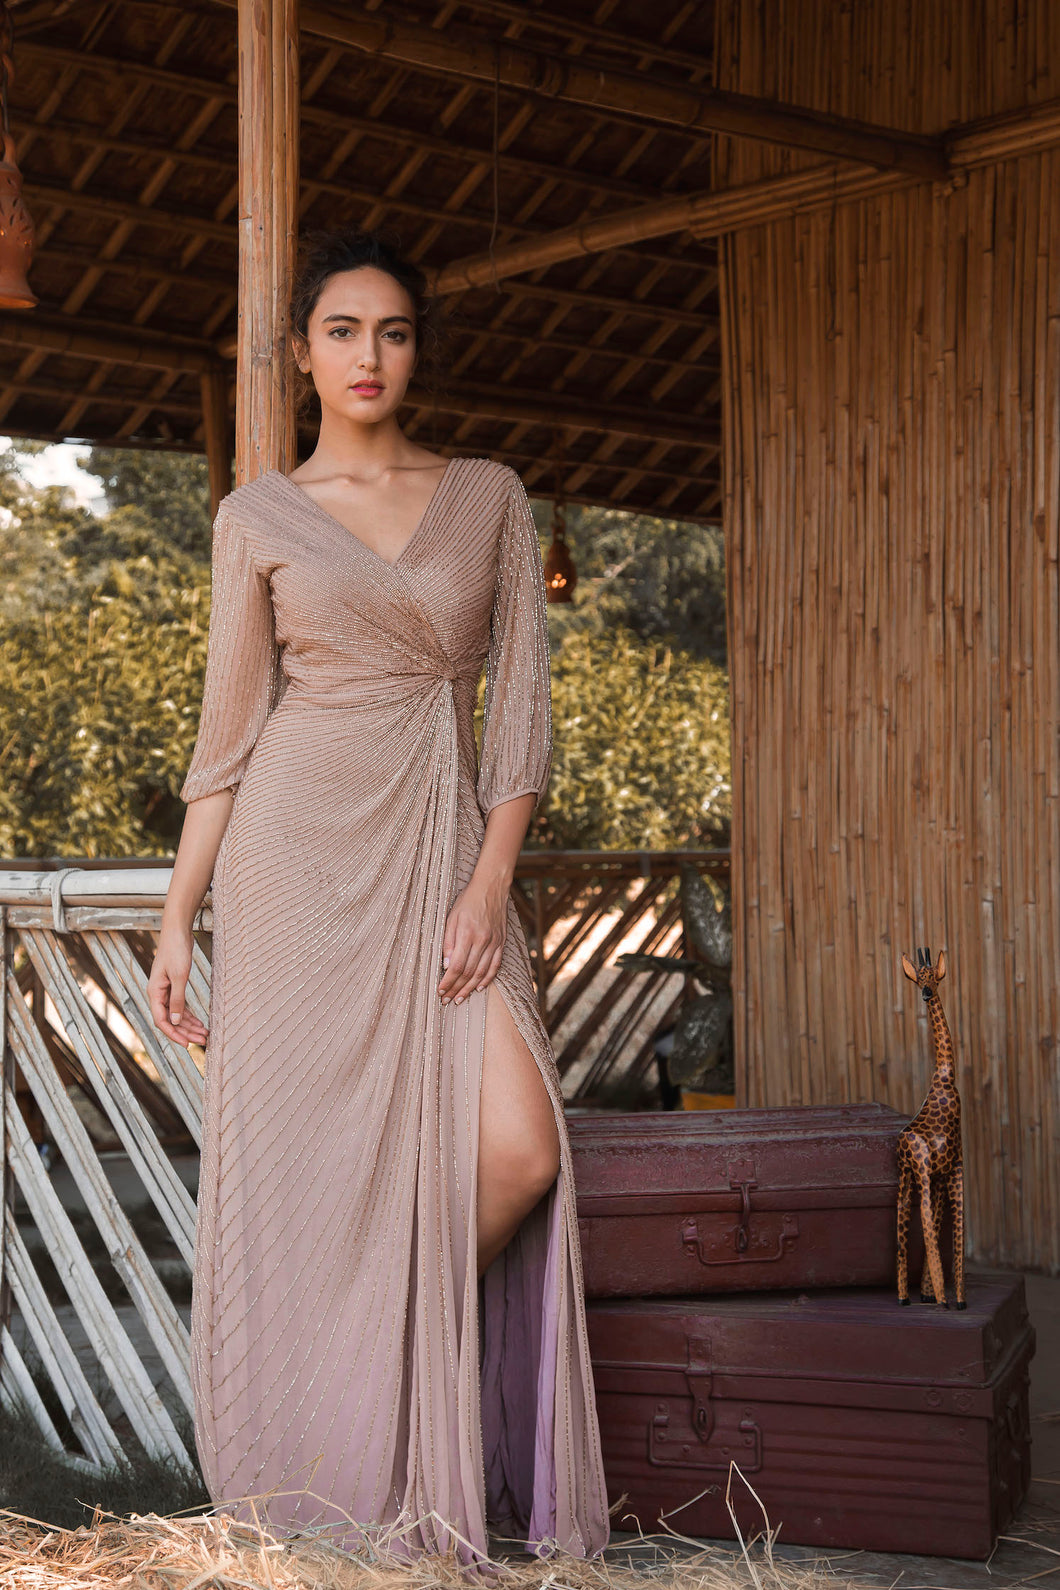 Nude Line Embellished Draped Couture Gown